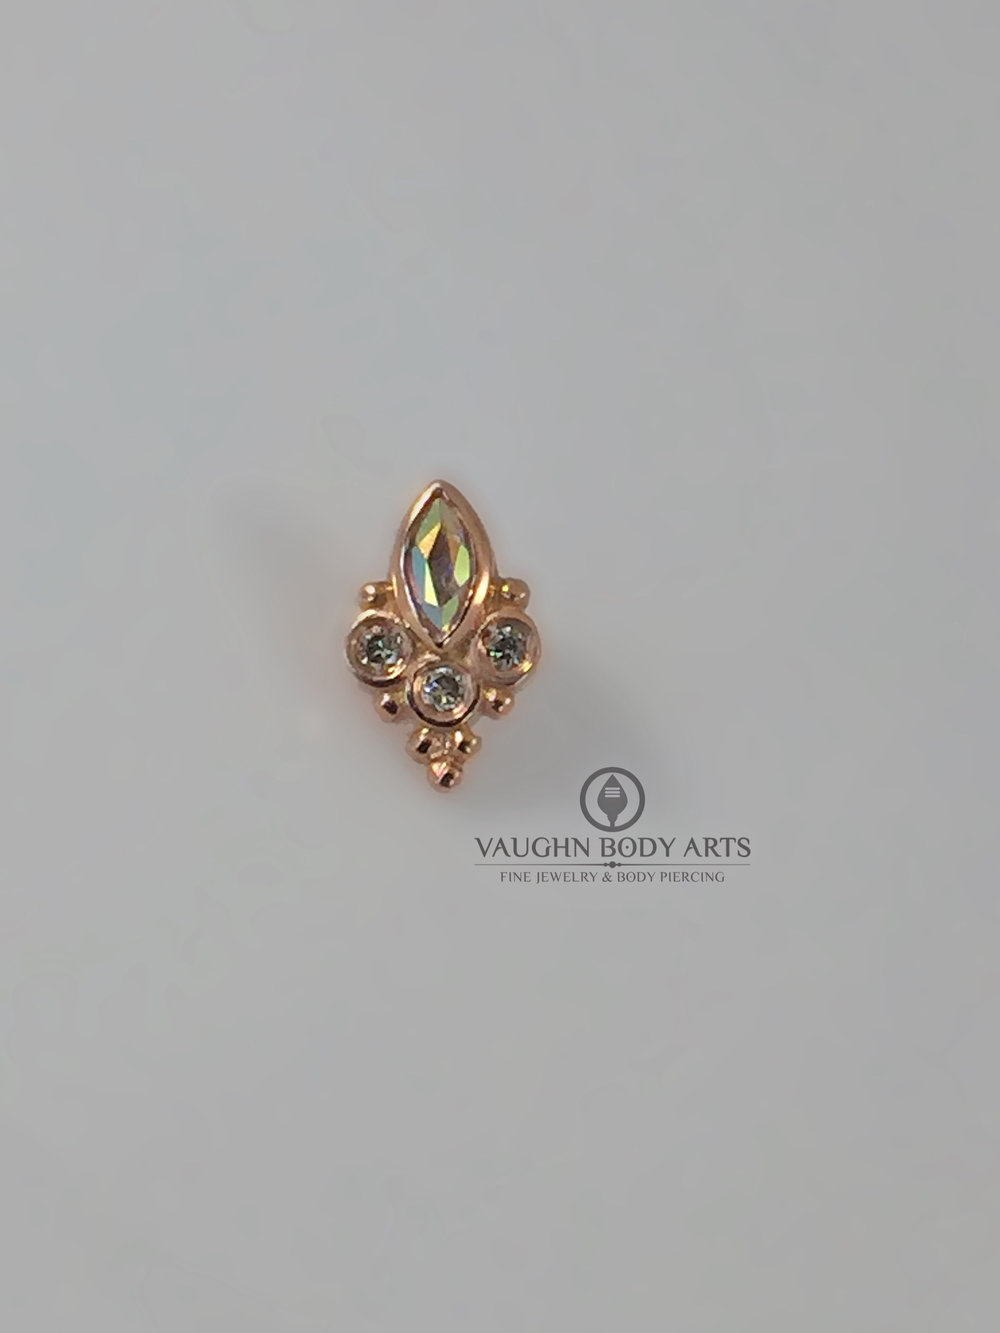 """Marquis Sarai"" end from BVLA in 14k rose gold featuring mercury mist topaz."